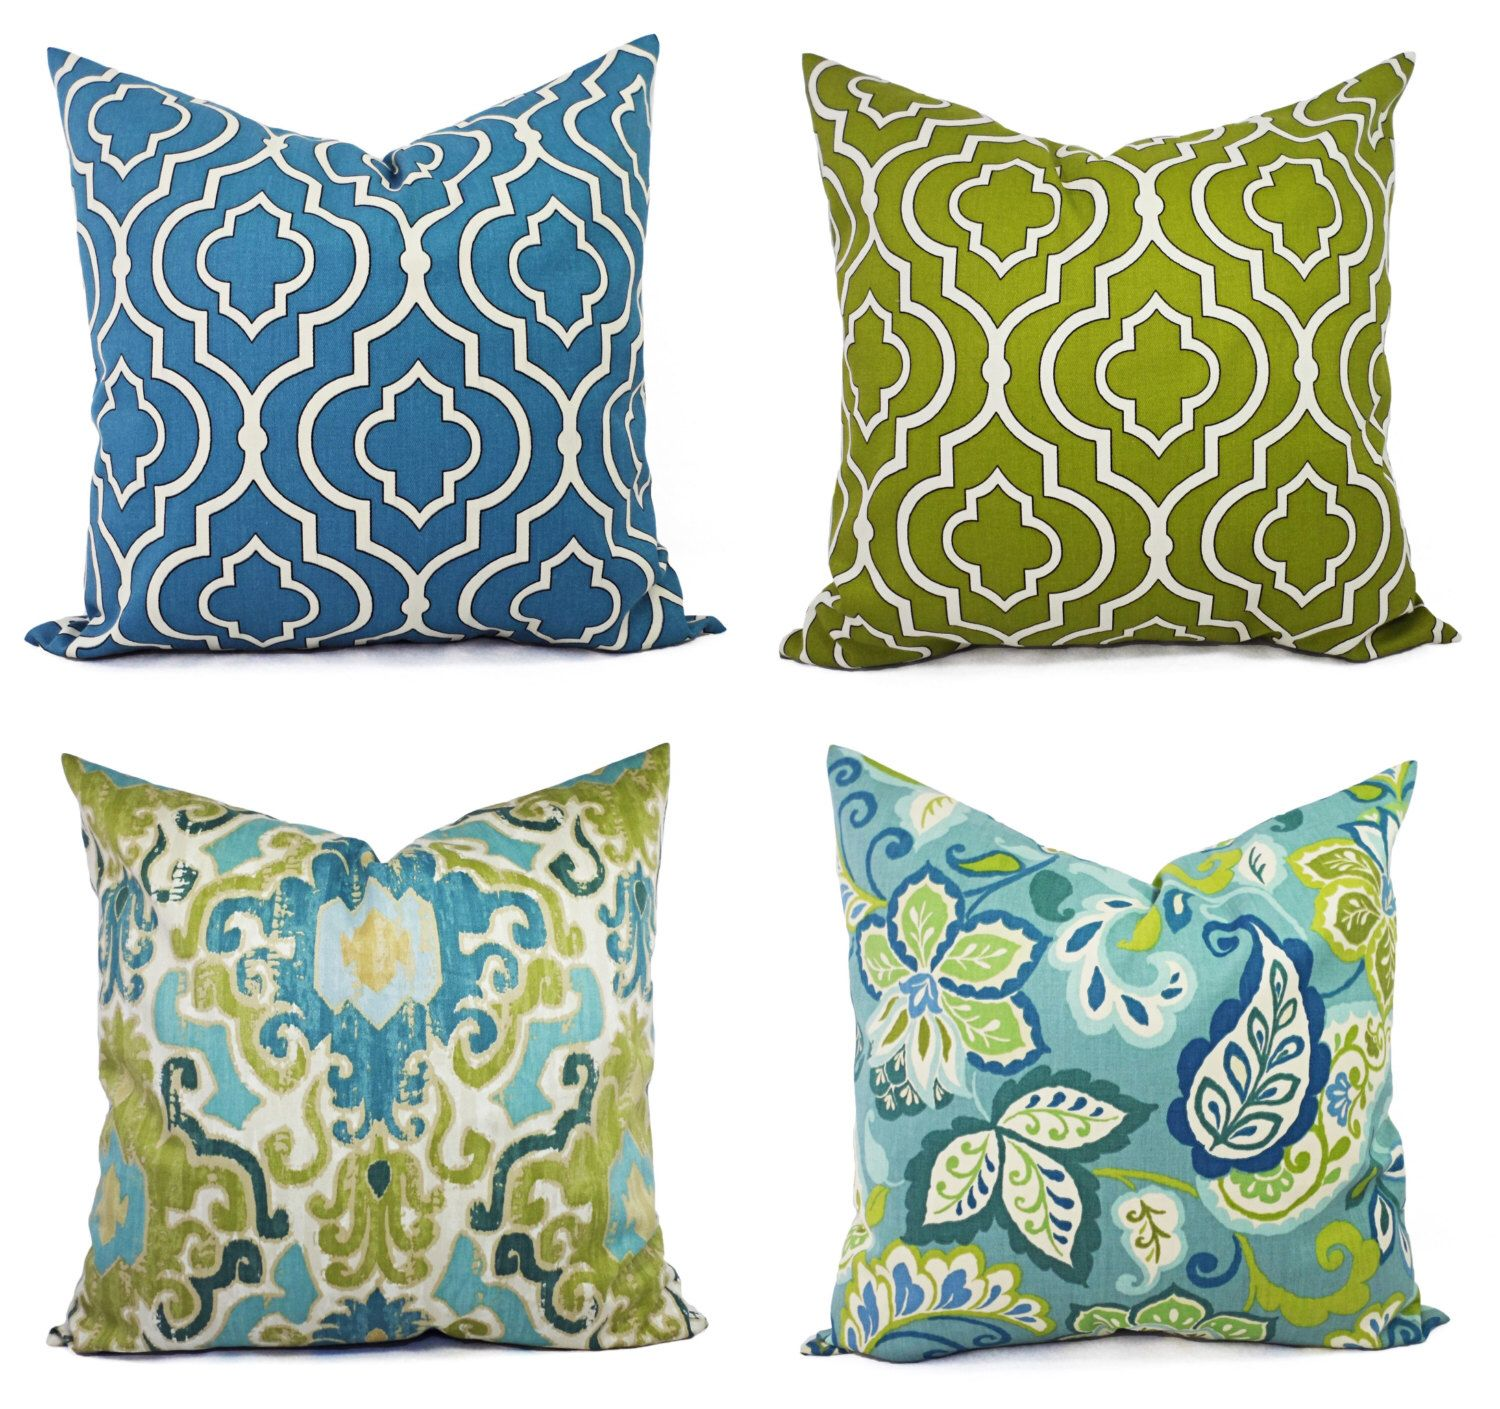 One Blue and Green Pillow Cover - Decorative Pillow Cover ...